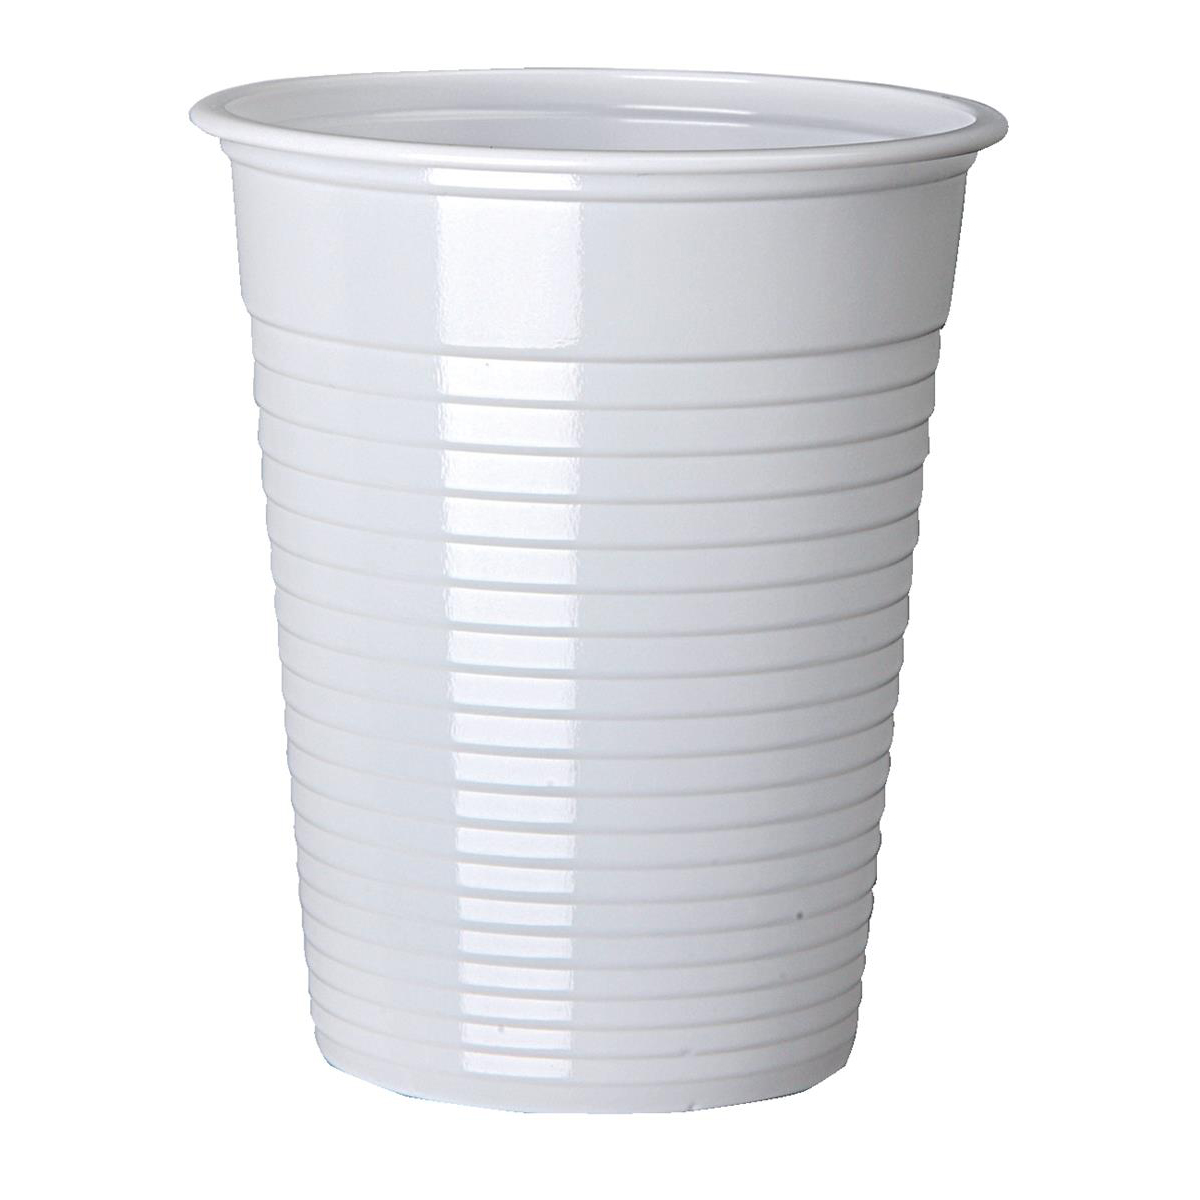 Cup for Cold Drinks Non Vending Machine 7oz 207ml White Ref 0510058 Pack 100